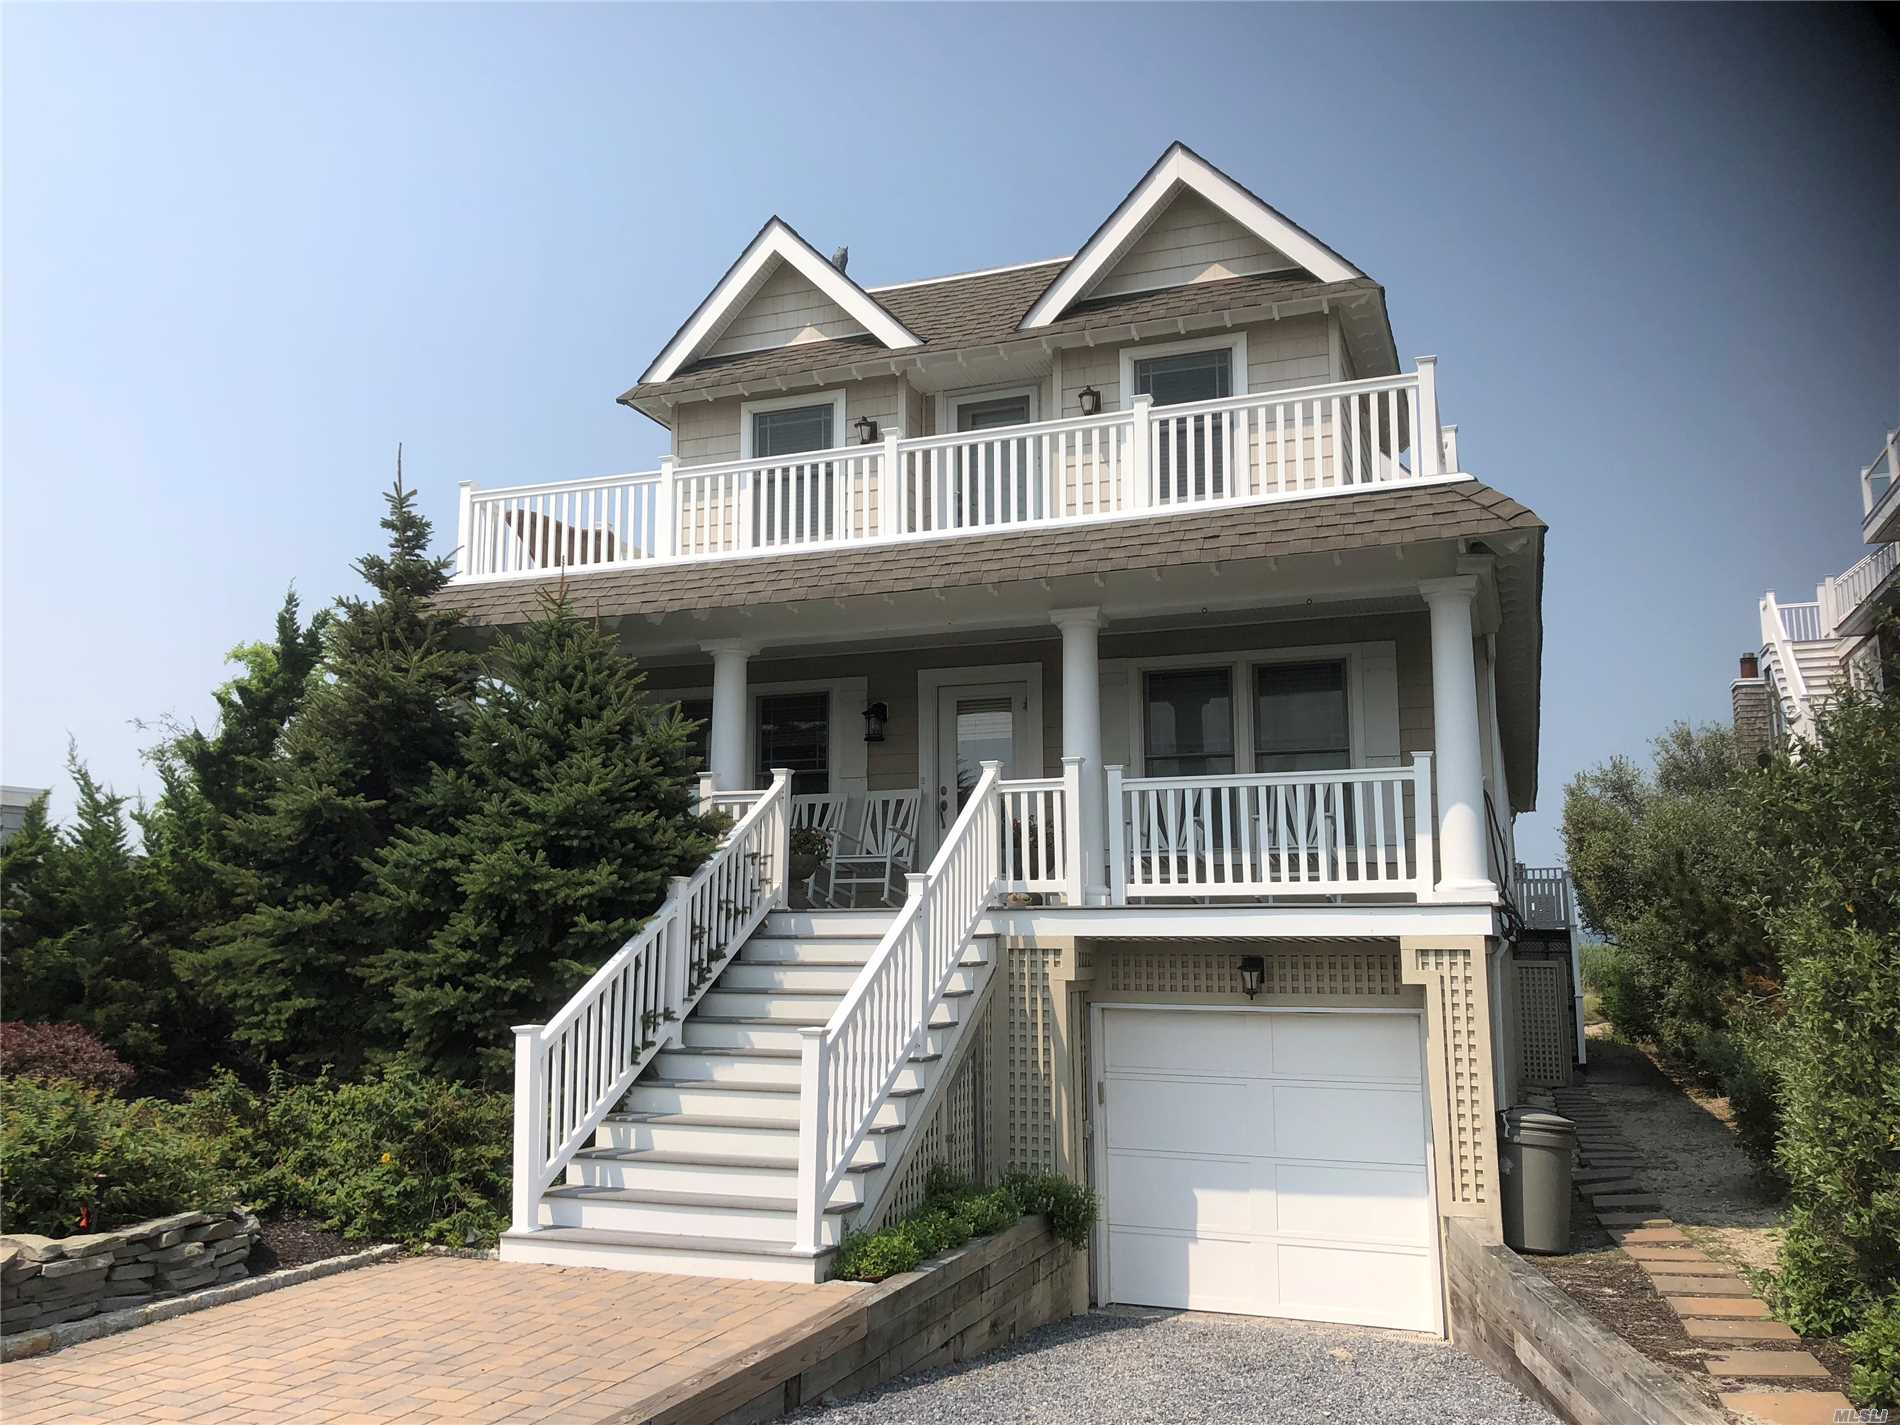 Beautifully Finished Move In Bayfront Dune Road Home With All The Finishes. Fabulous Kitchen, Huge Lr/Dr Great Room With Fireplace. First Floor Bedroom Plus Second Floor Large Luxurious Master Suite. Full Size In Deck Gunite Heated Pool Surrounded By Huge Trex Deck. Roof Top Deck. Spectacular Water Views From Everywhere